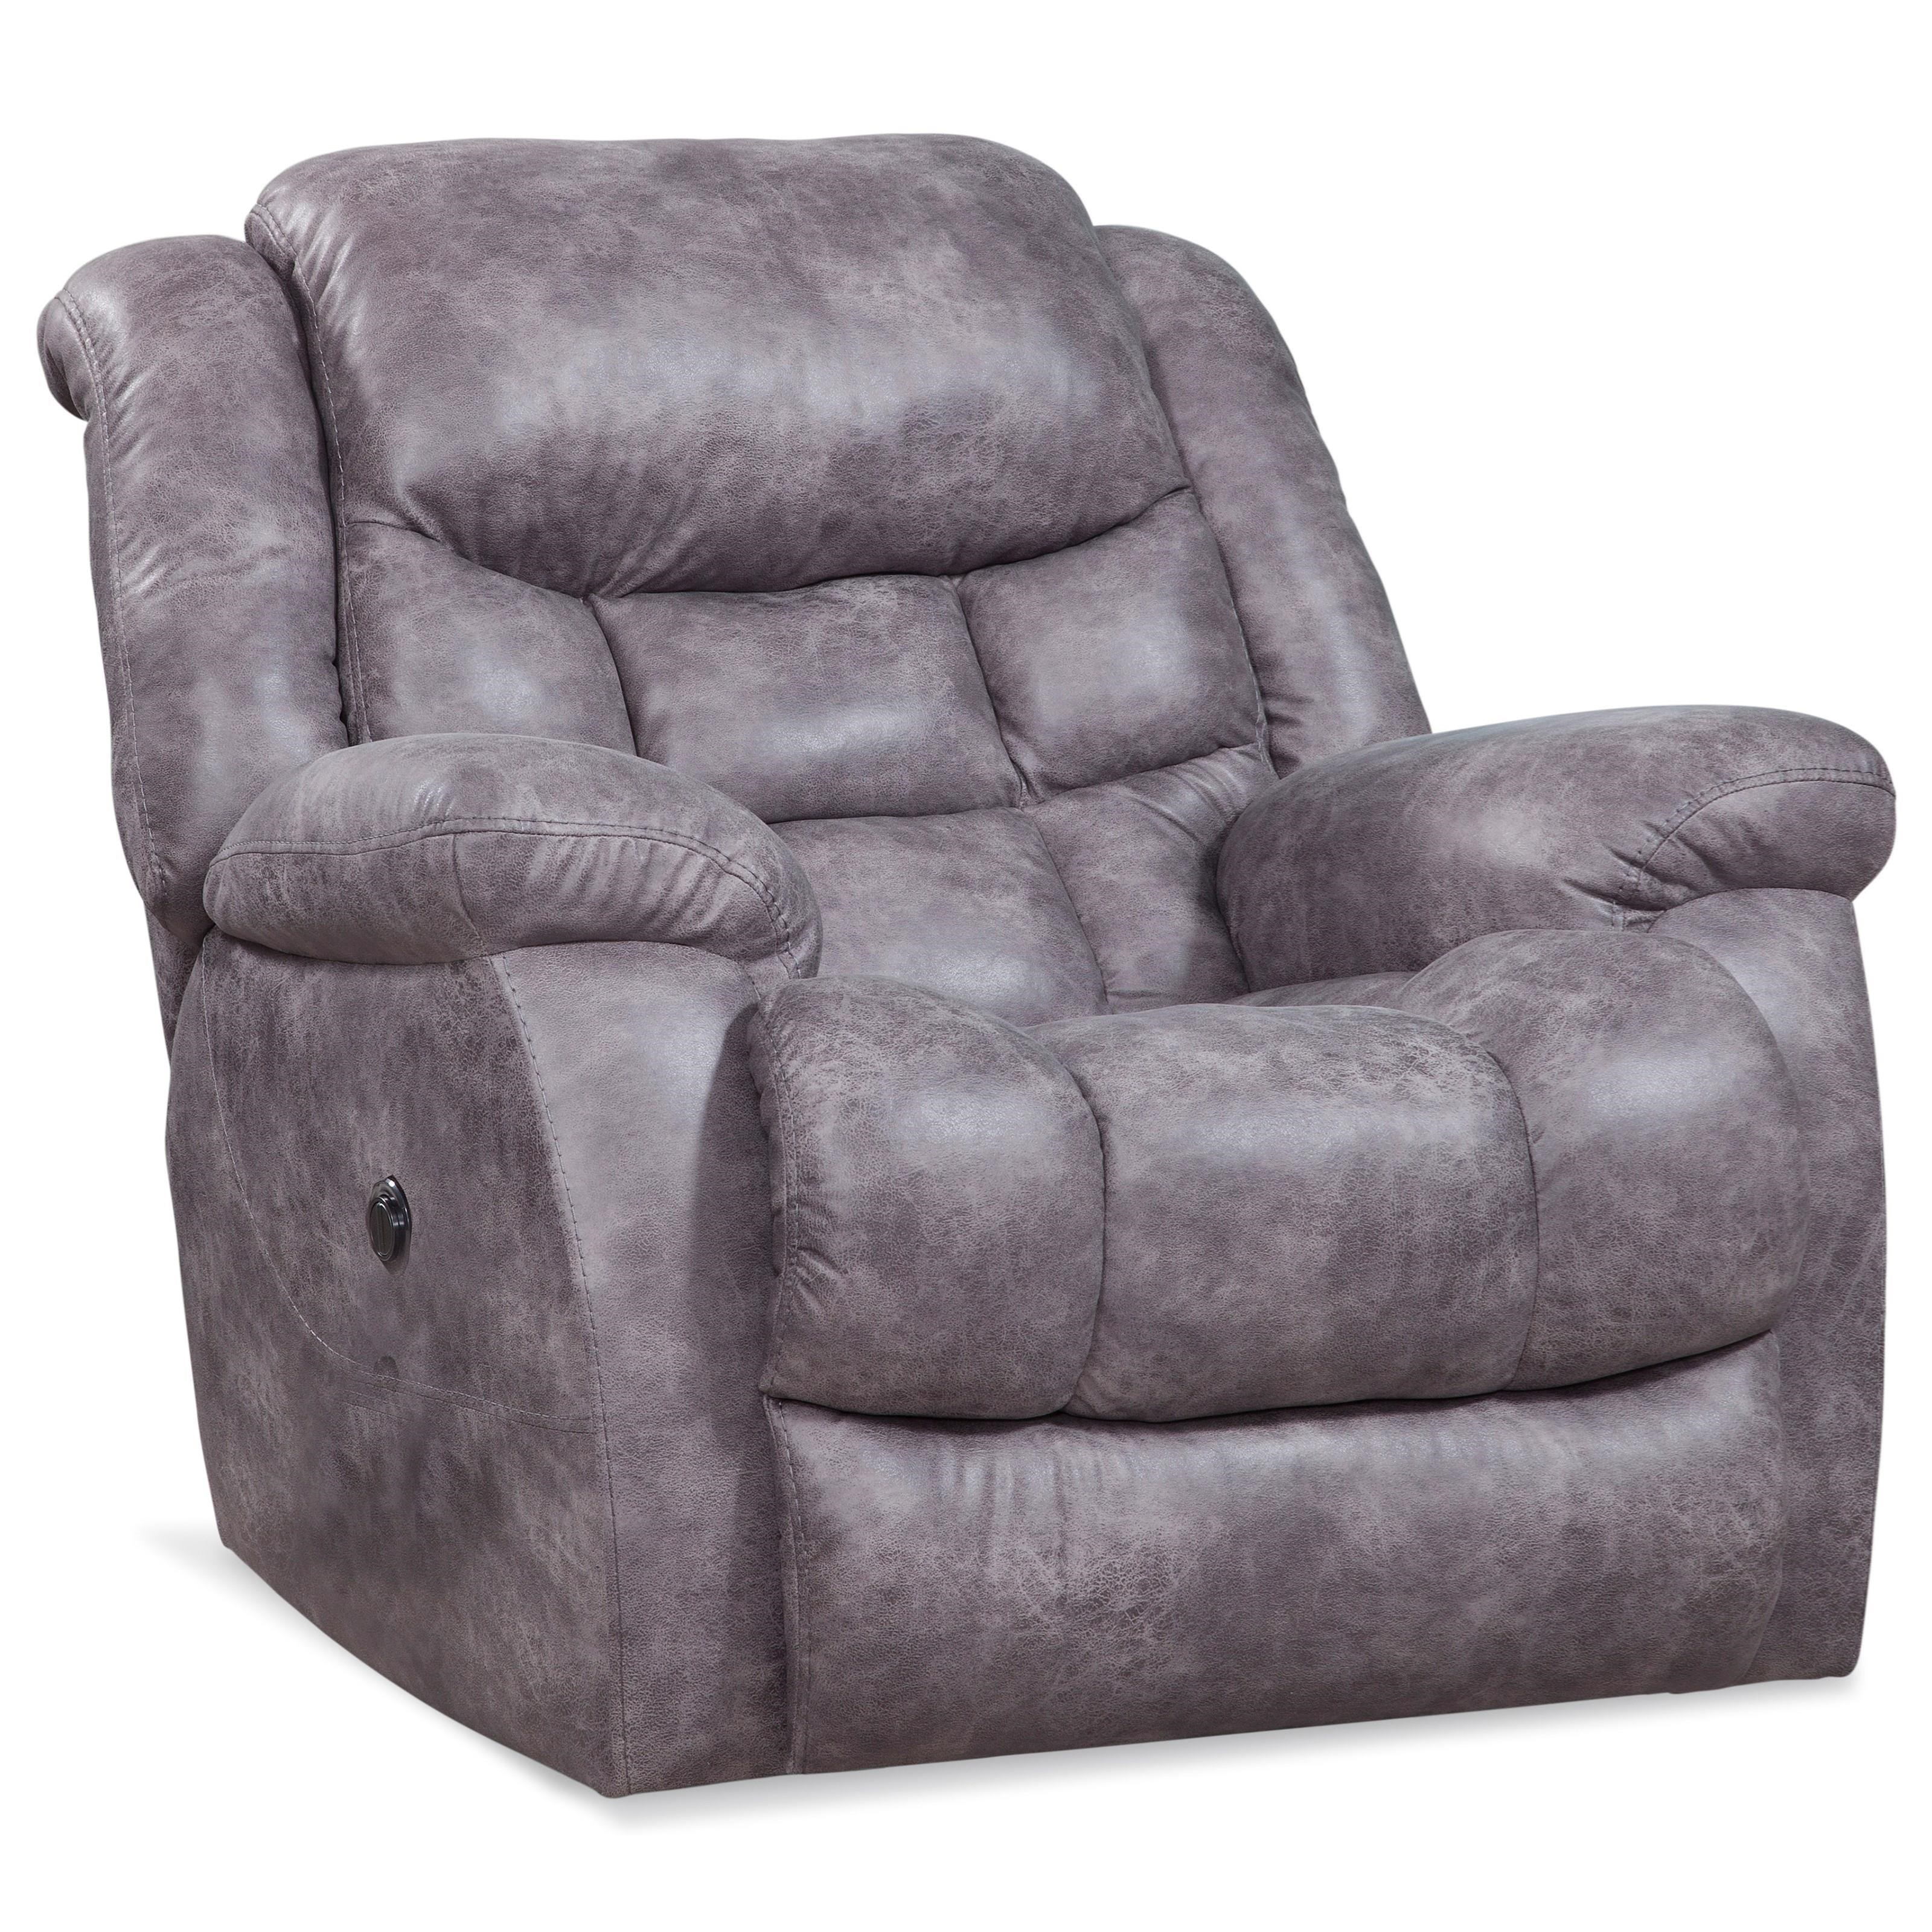 169 Power Rocker Recliner by HomeStretch at Turk Furniture